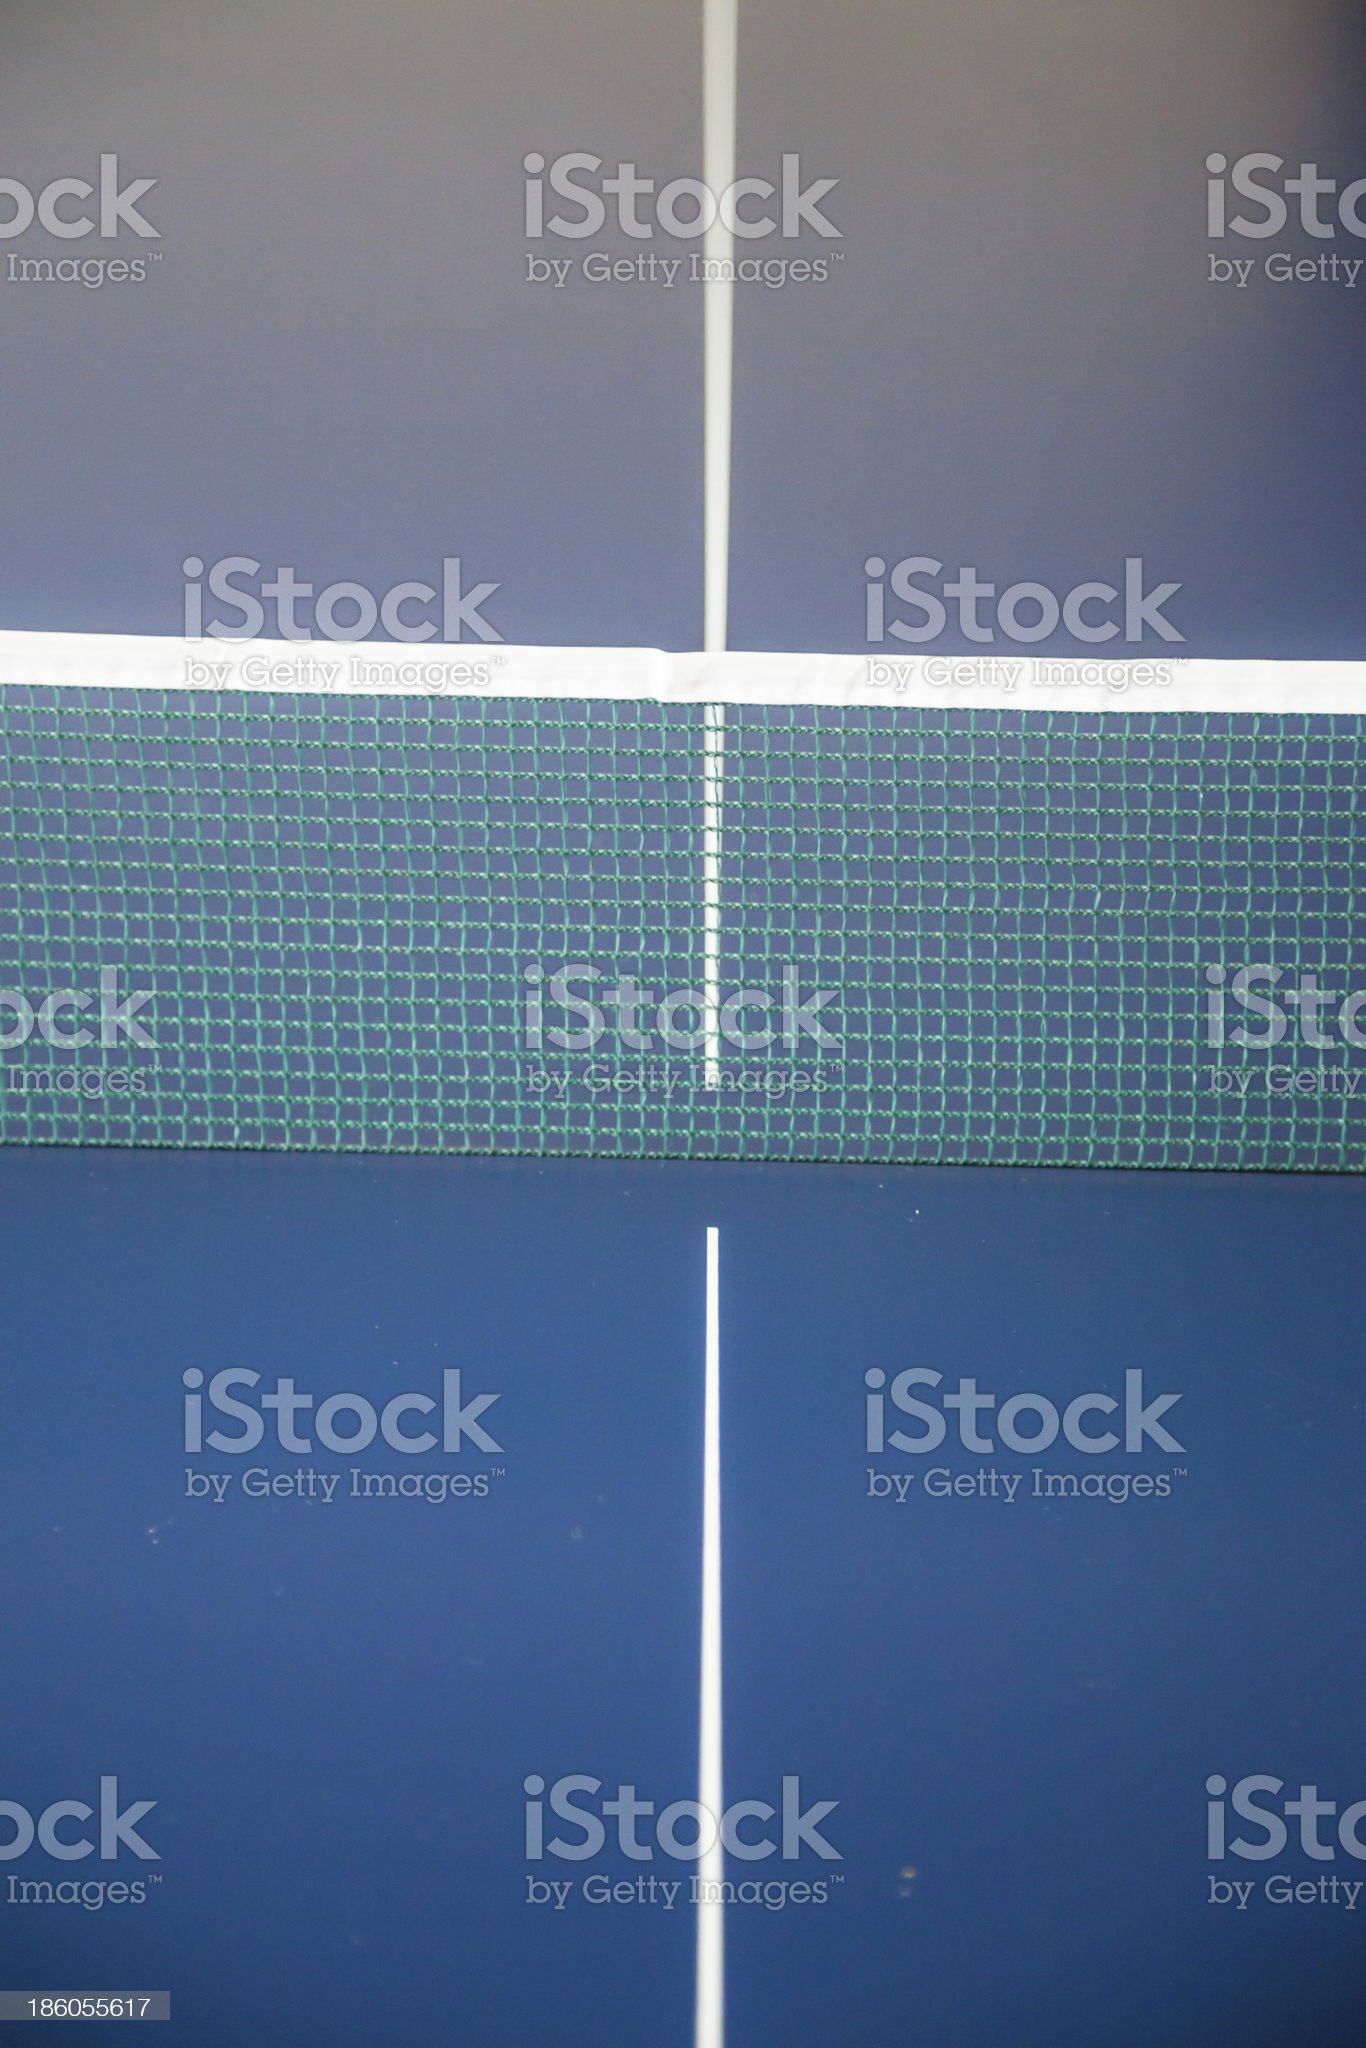 pingpong table royalty-free stock photo